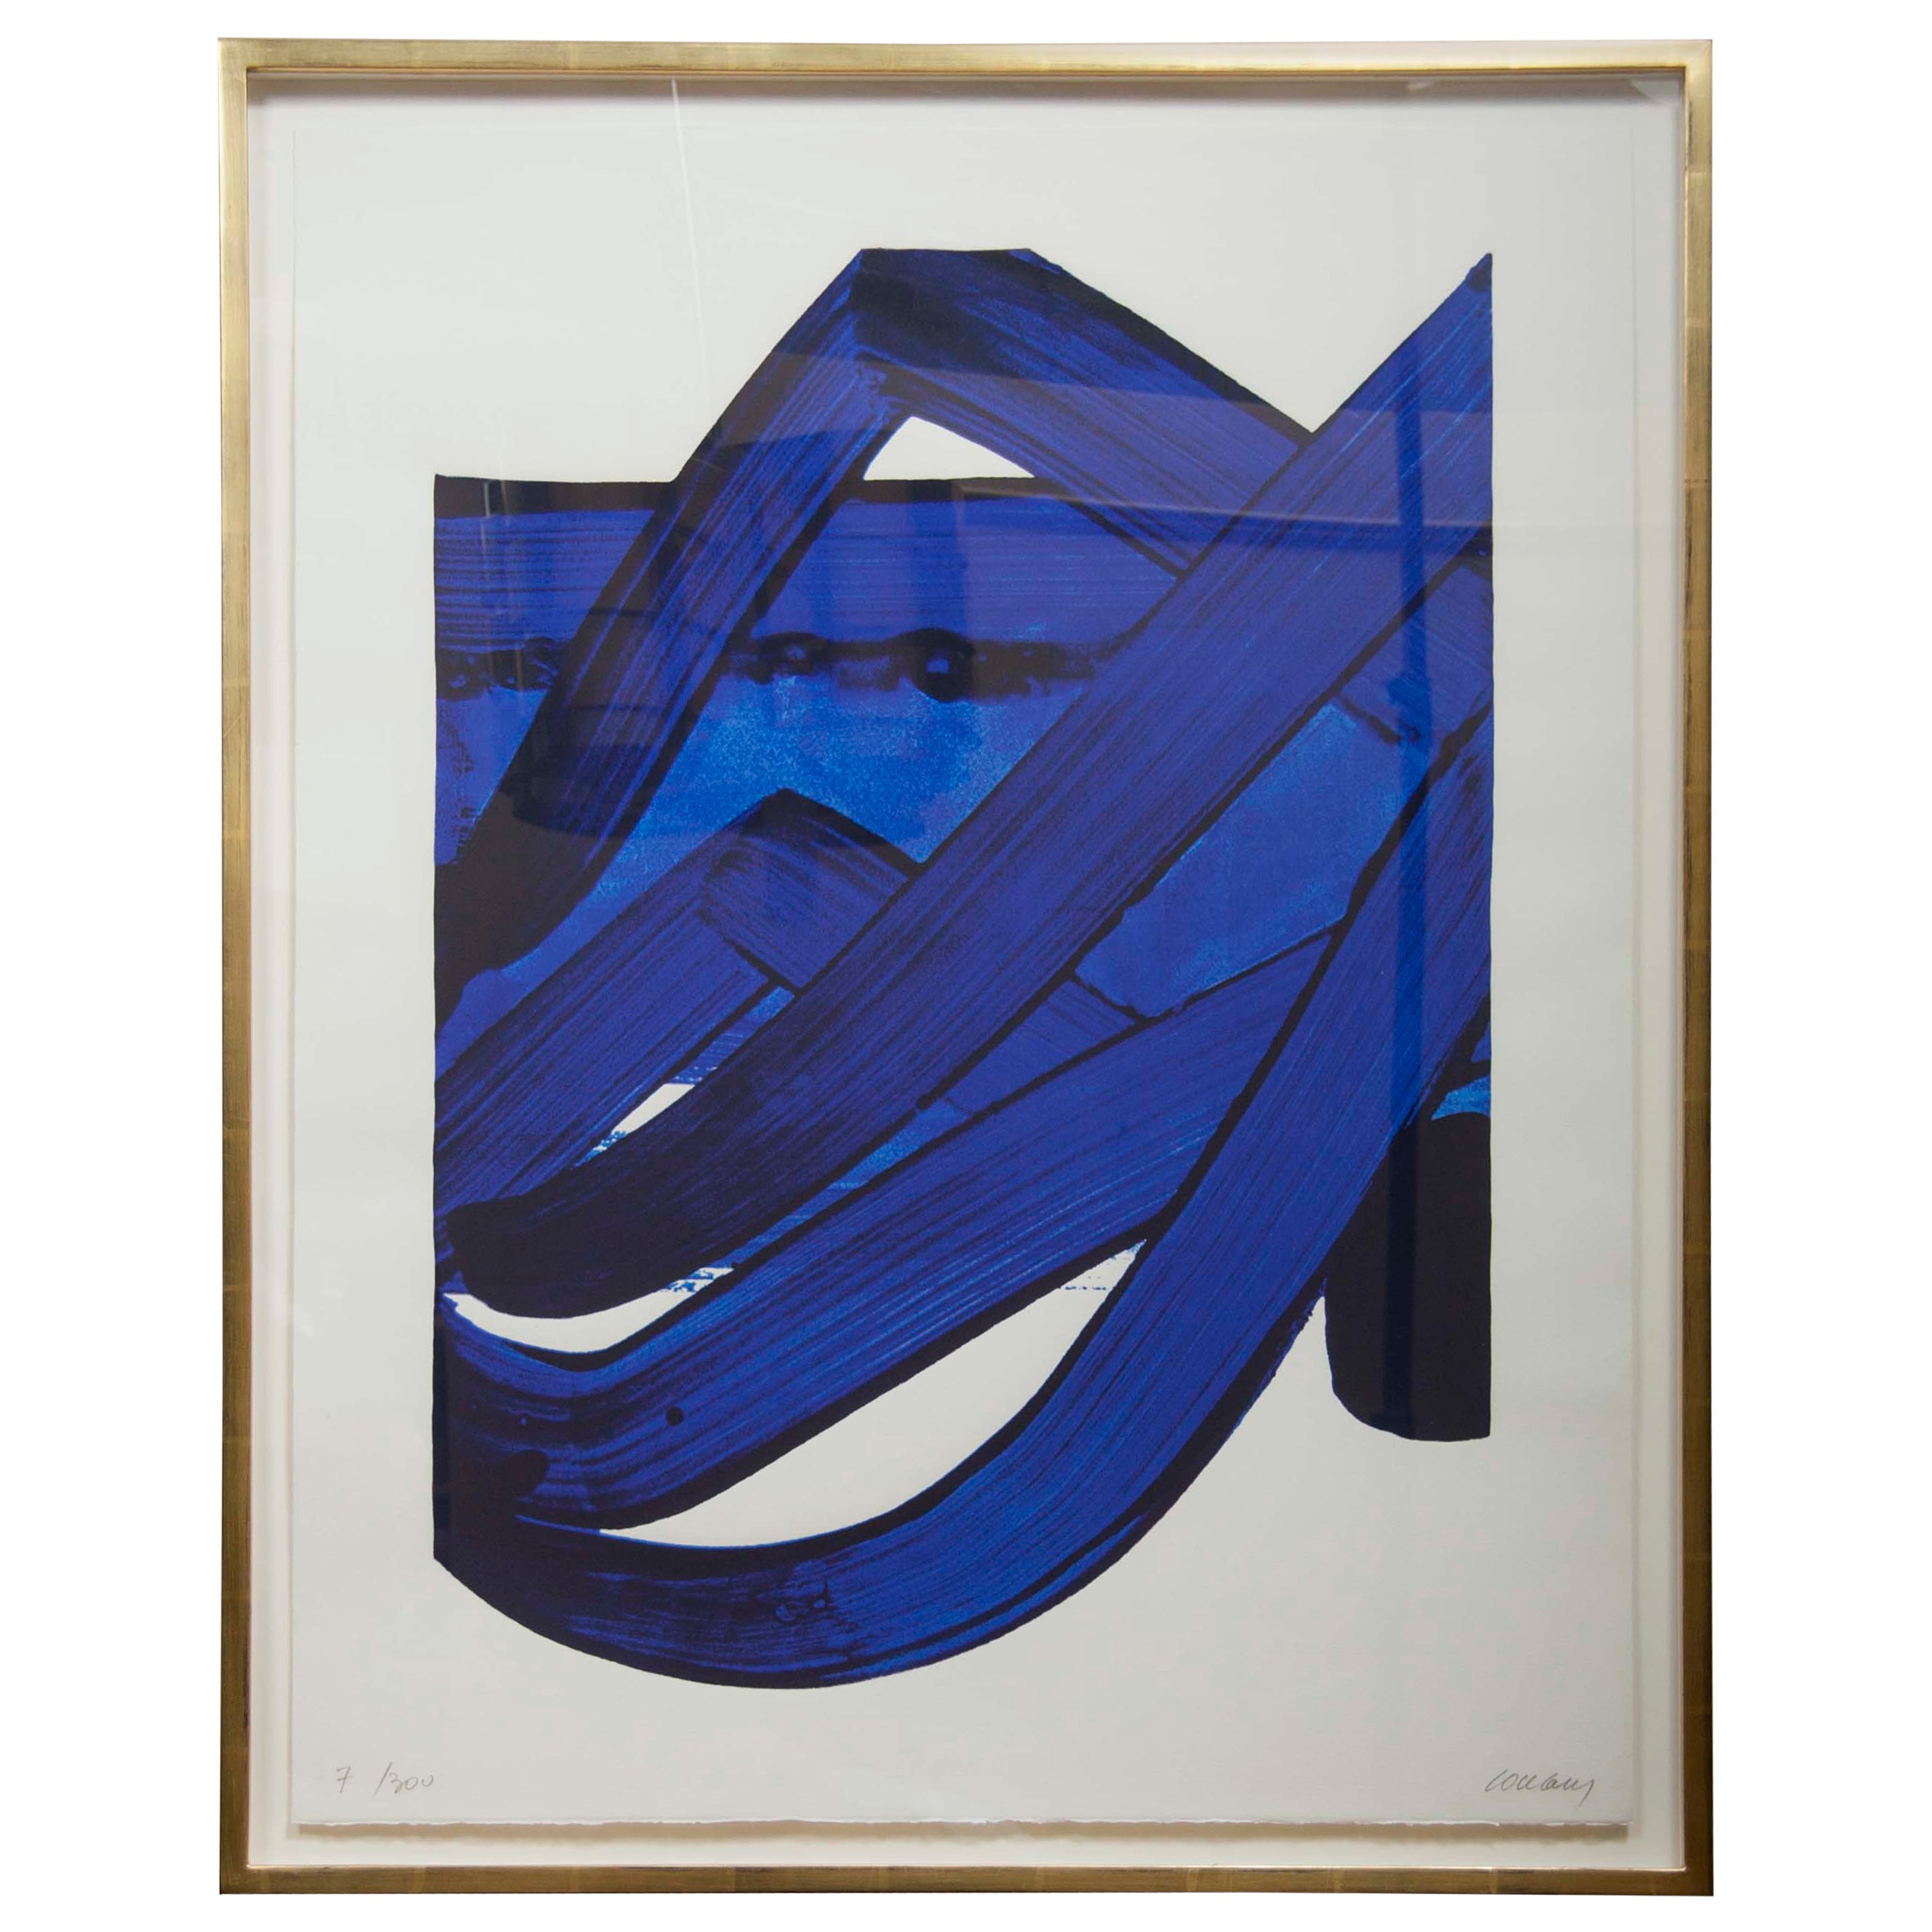 Lithograph by Pierre Soulages from the Official Arts Portfolio of XXIV Olympiad